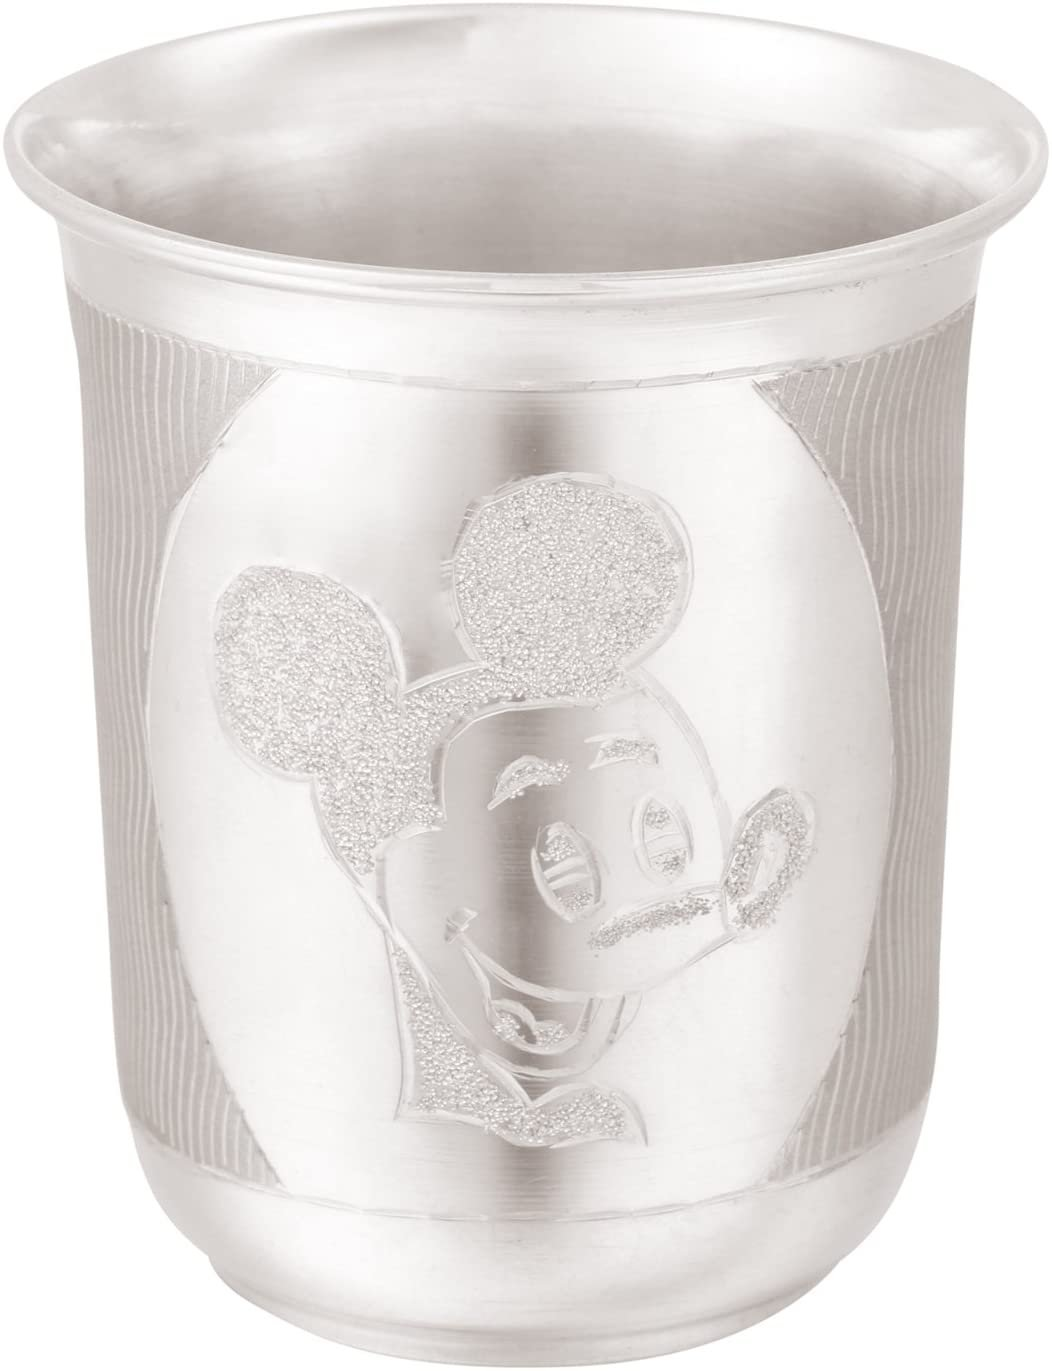 SILVER JUICE GLASSS FOR KIDS